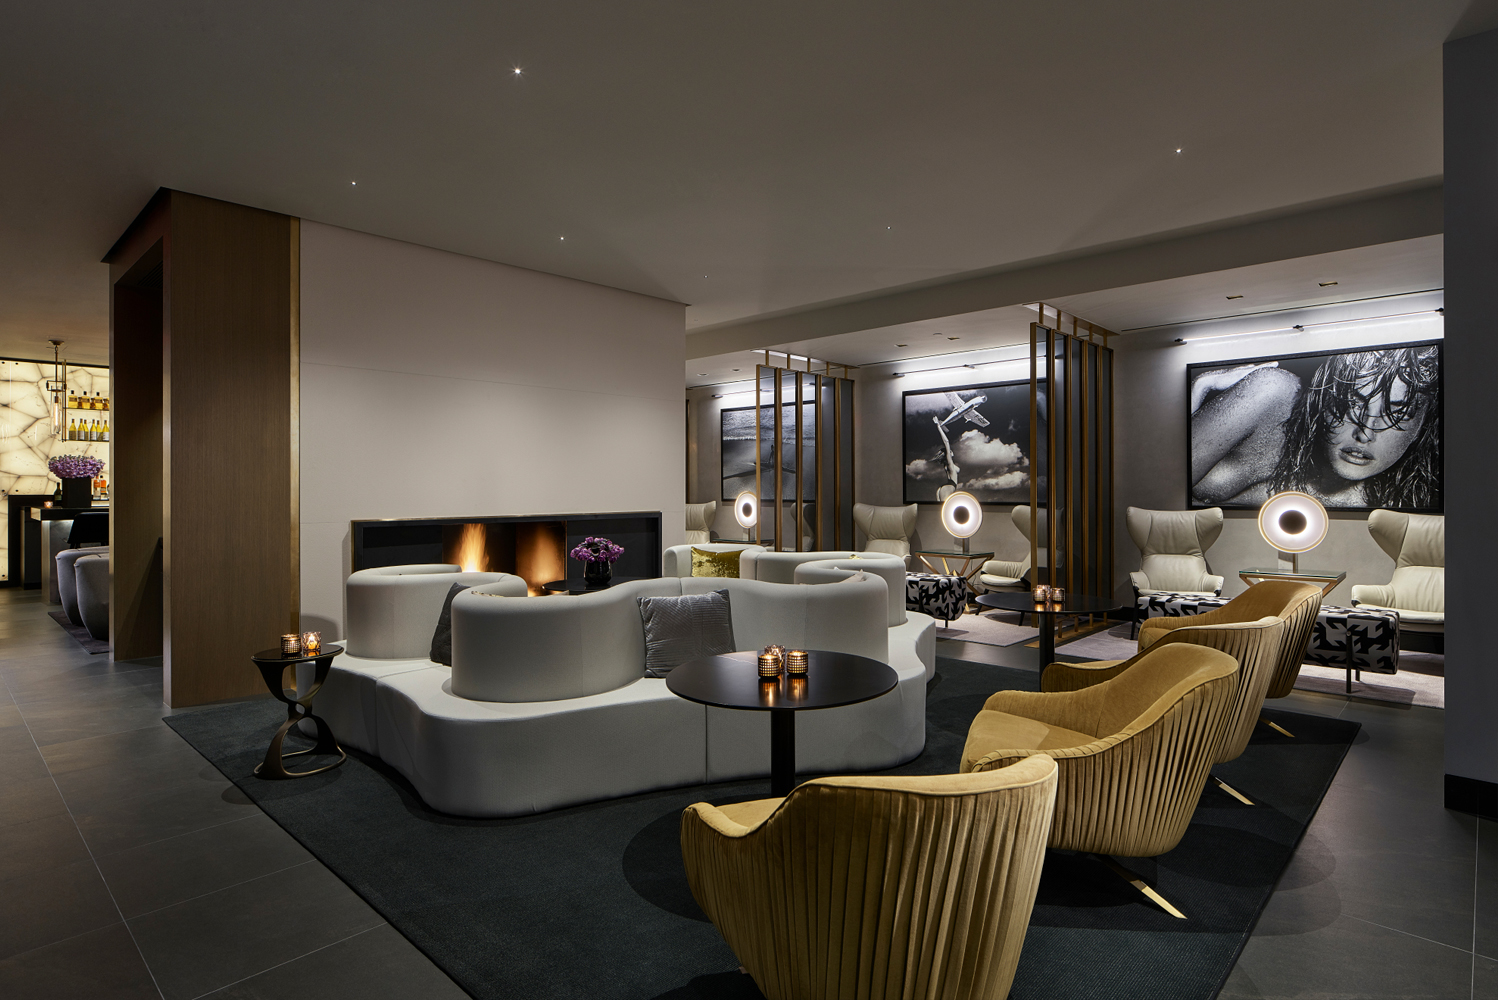 For this property, the brand reimagined the traditional hotel into a residential-inspired experience with a brand-new, street-level lobby, lounge and bar.